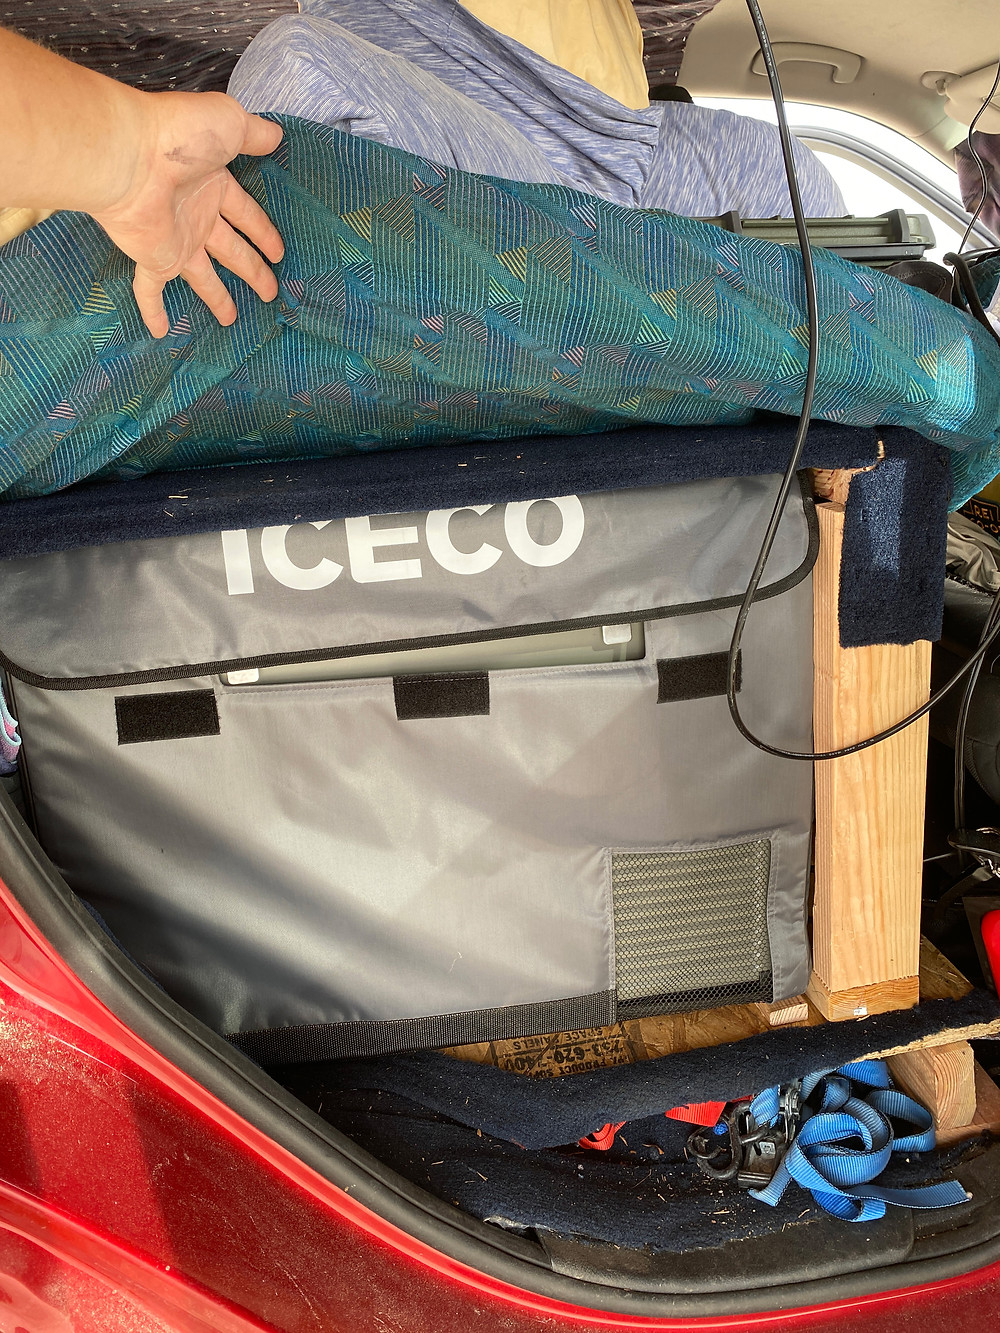 a red 2011 Jeep Grand Cherokee begins its transformation from soccer-mobile to a camper for Van Life. An Iceco portable refrigerator is installed in the back of the truck